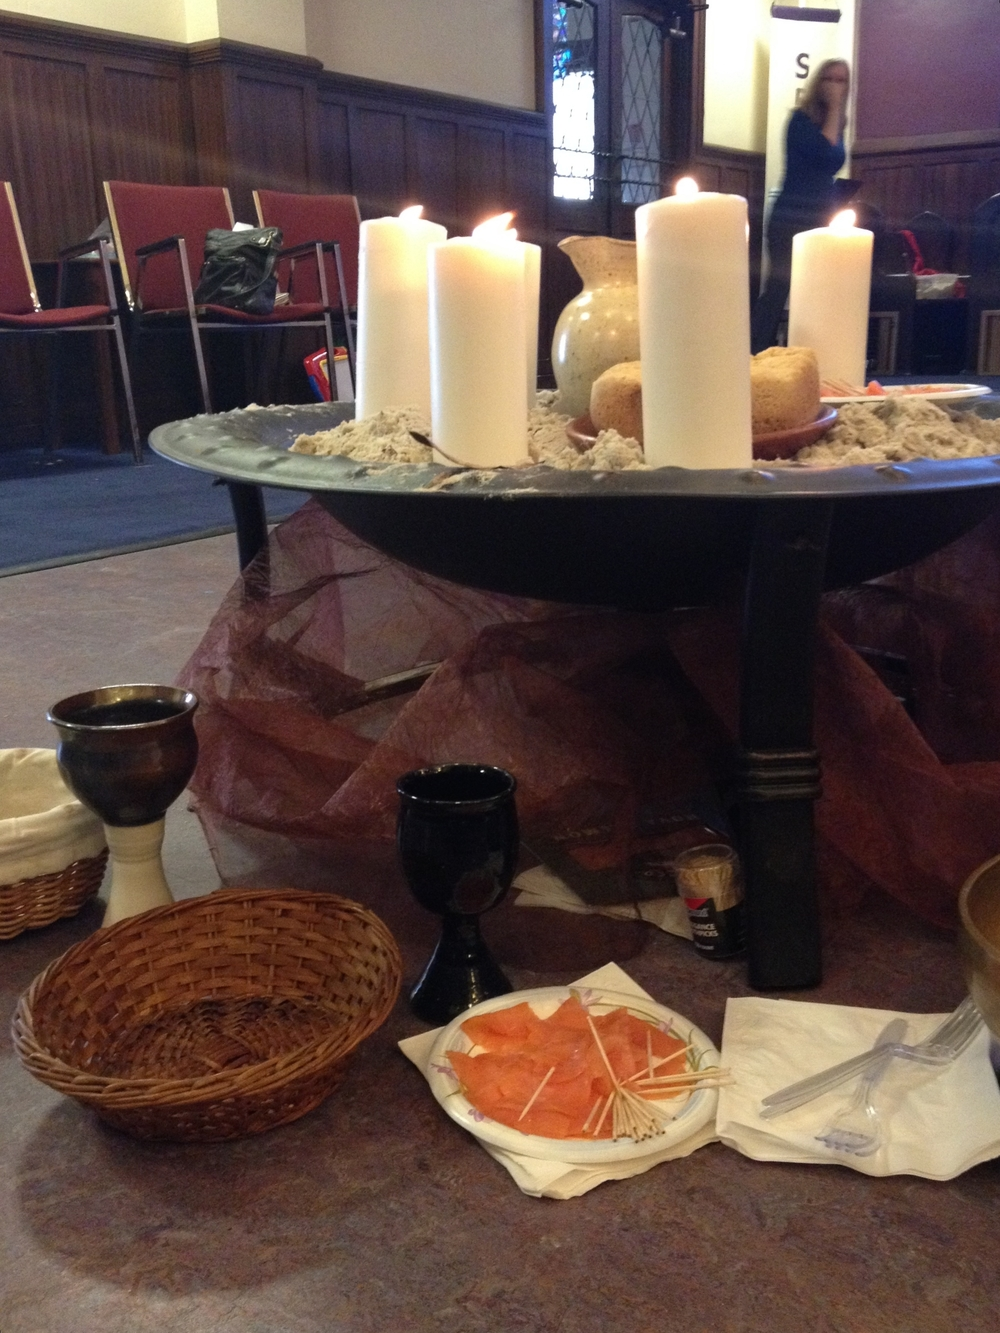 Communion and smoked salmon by the seaside, at Church of the Pilgrims.